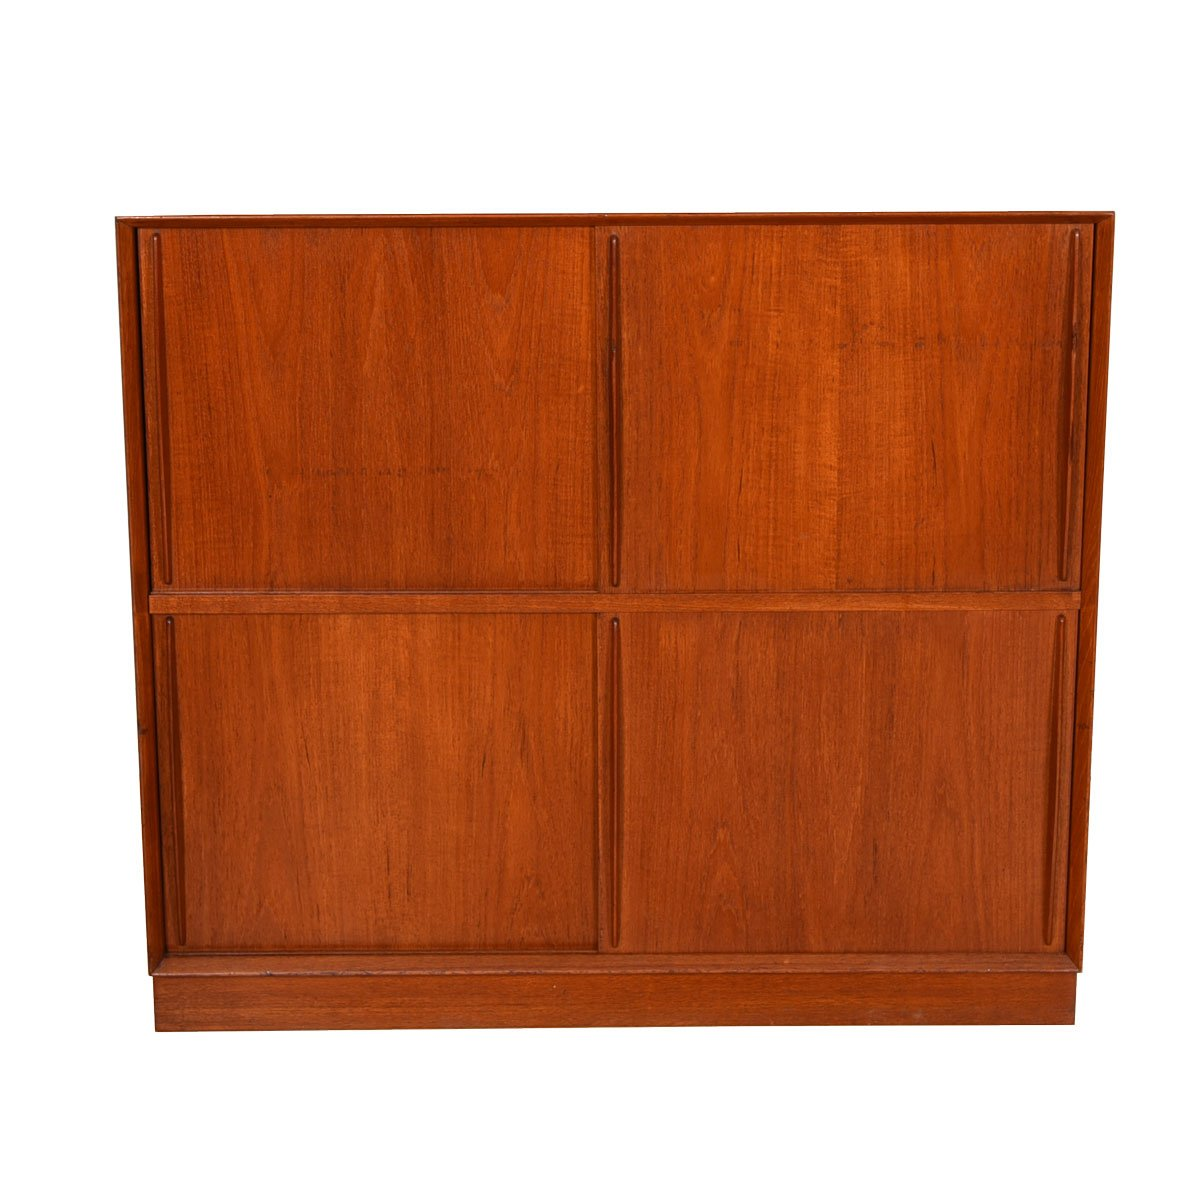 Peter Hvidt Solid-Teak Danish Sliding Door 2-Tier Storage Cabinet